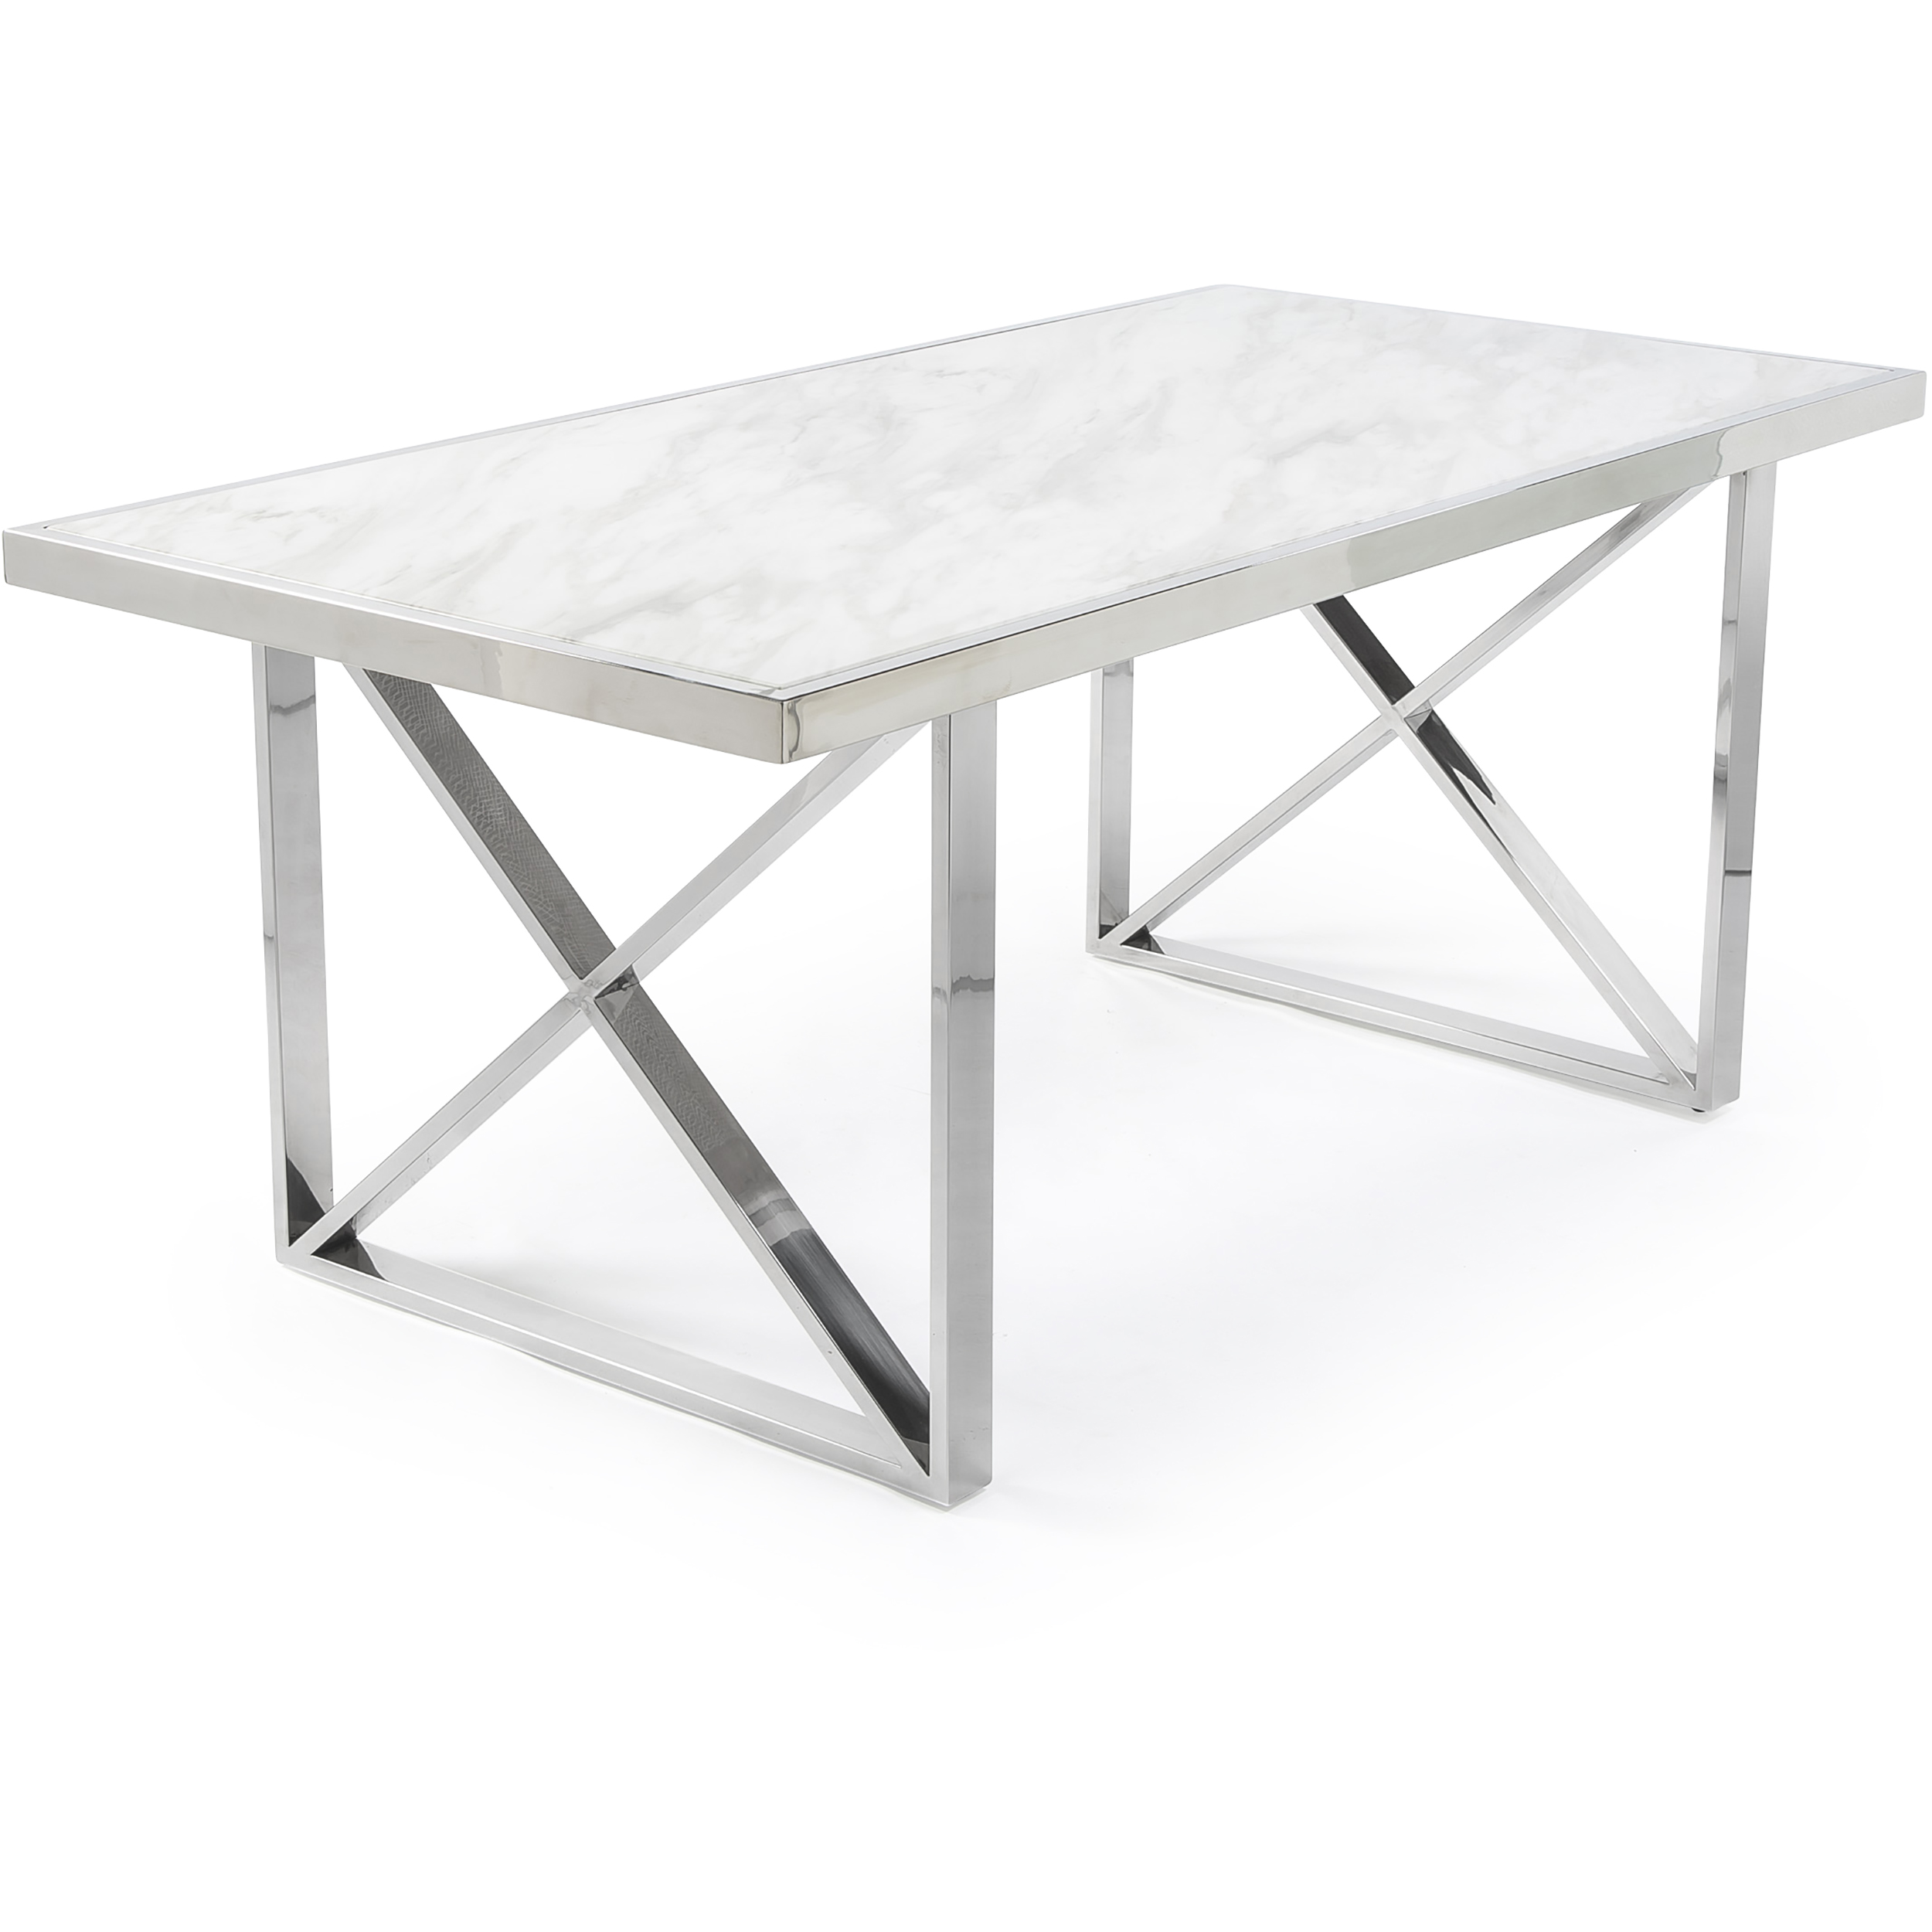 1.8M Tuscany White Marble Dining Table with a Polished Steel Cross Structure Base